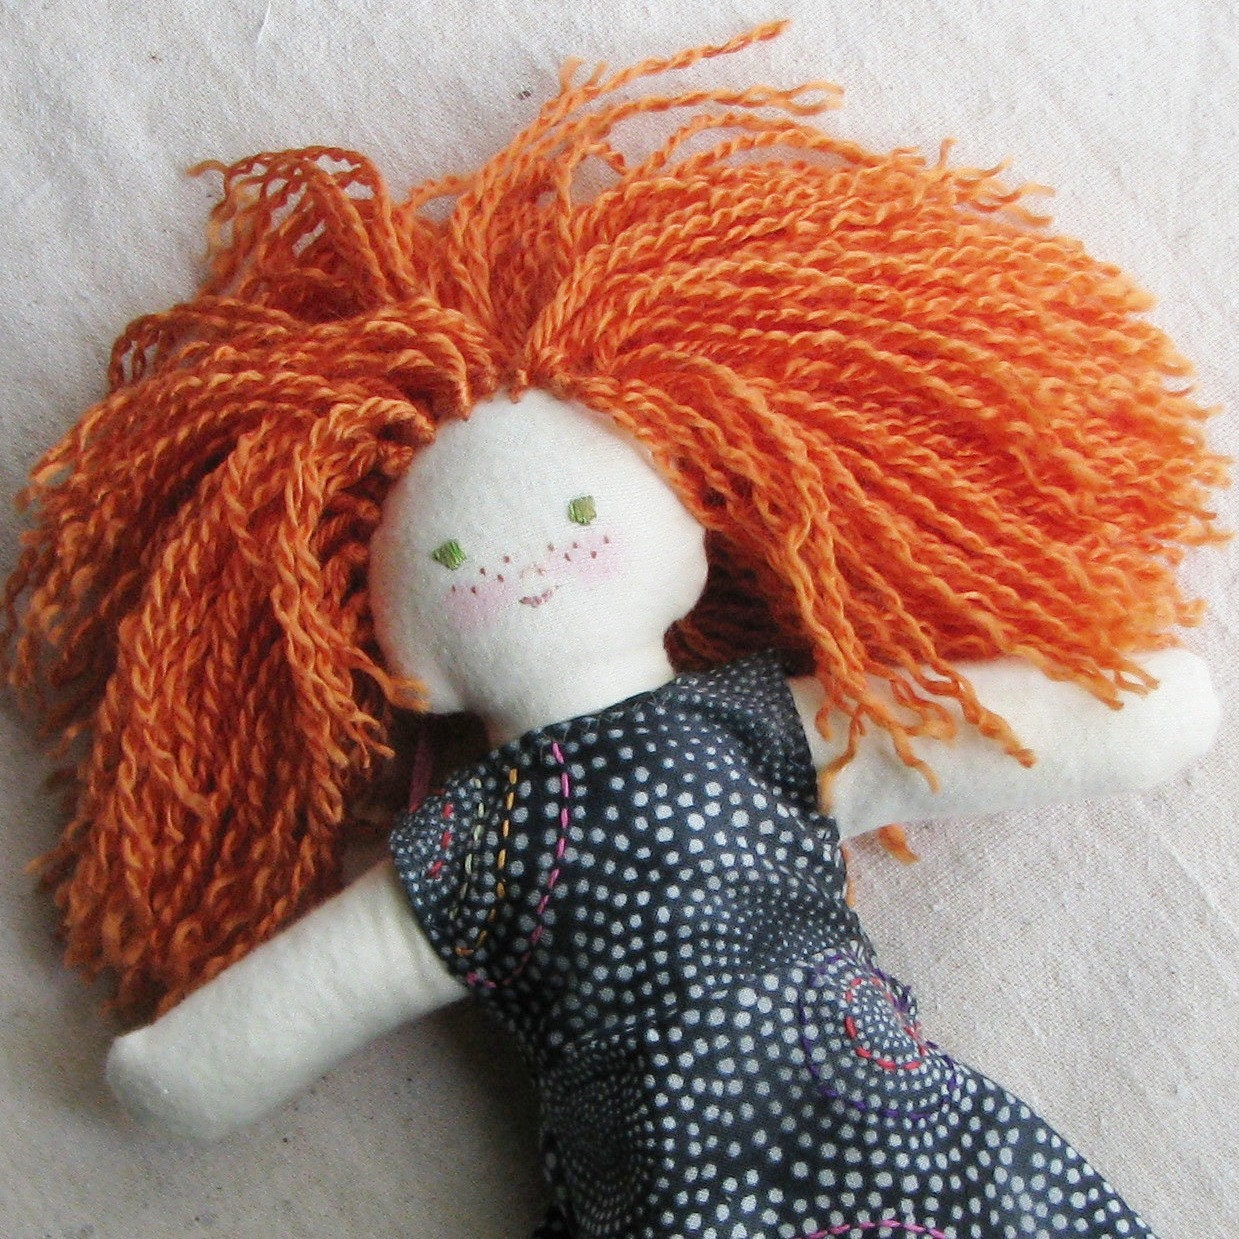 Cloth doll, 10 inch, redhead with freckles in an hand embroidered charcoal gray dress, child friendly